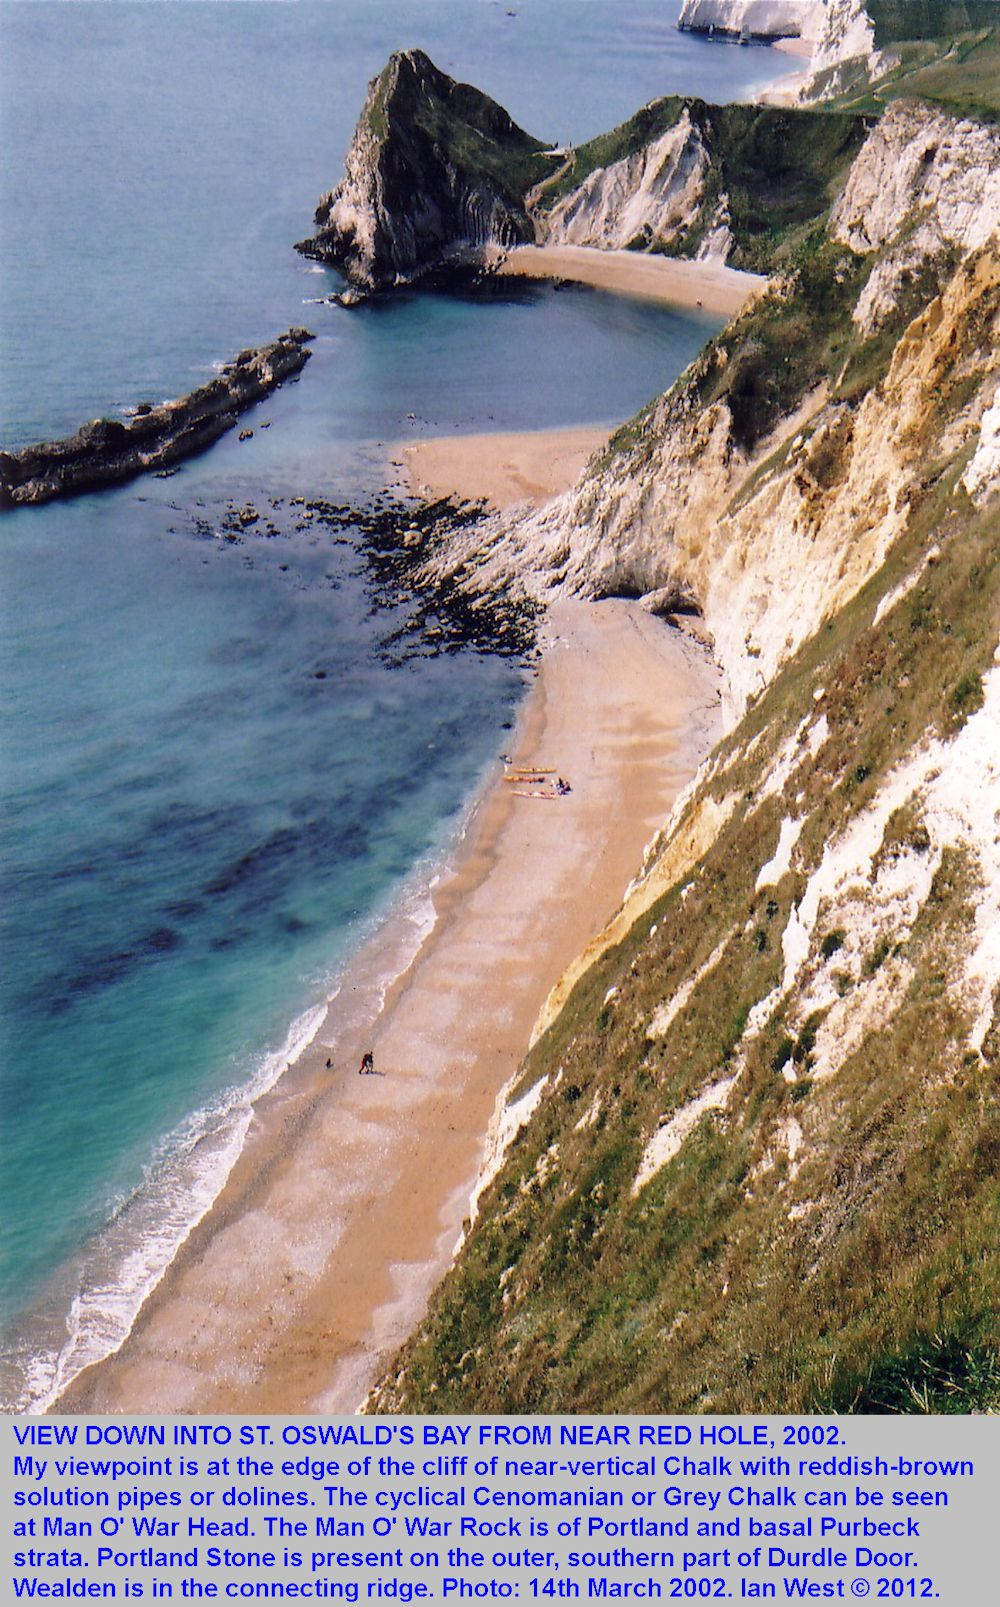 A view from the cliff edge of the Chalk Cliff above St. Oswald's Bay, looking towards Man O' War rock and Durdle Door, 14th March 2002, revised